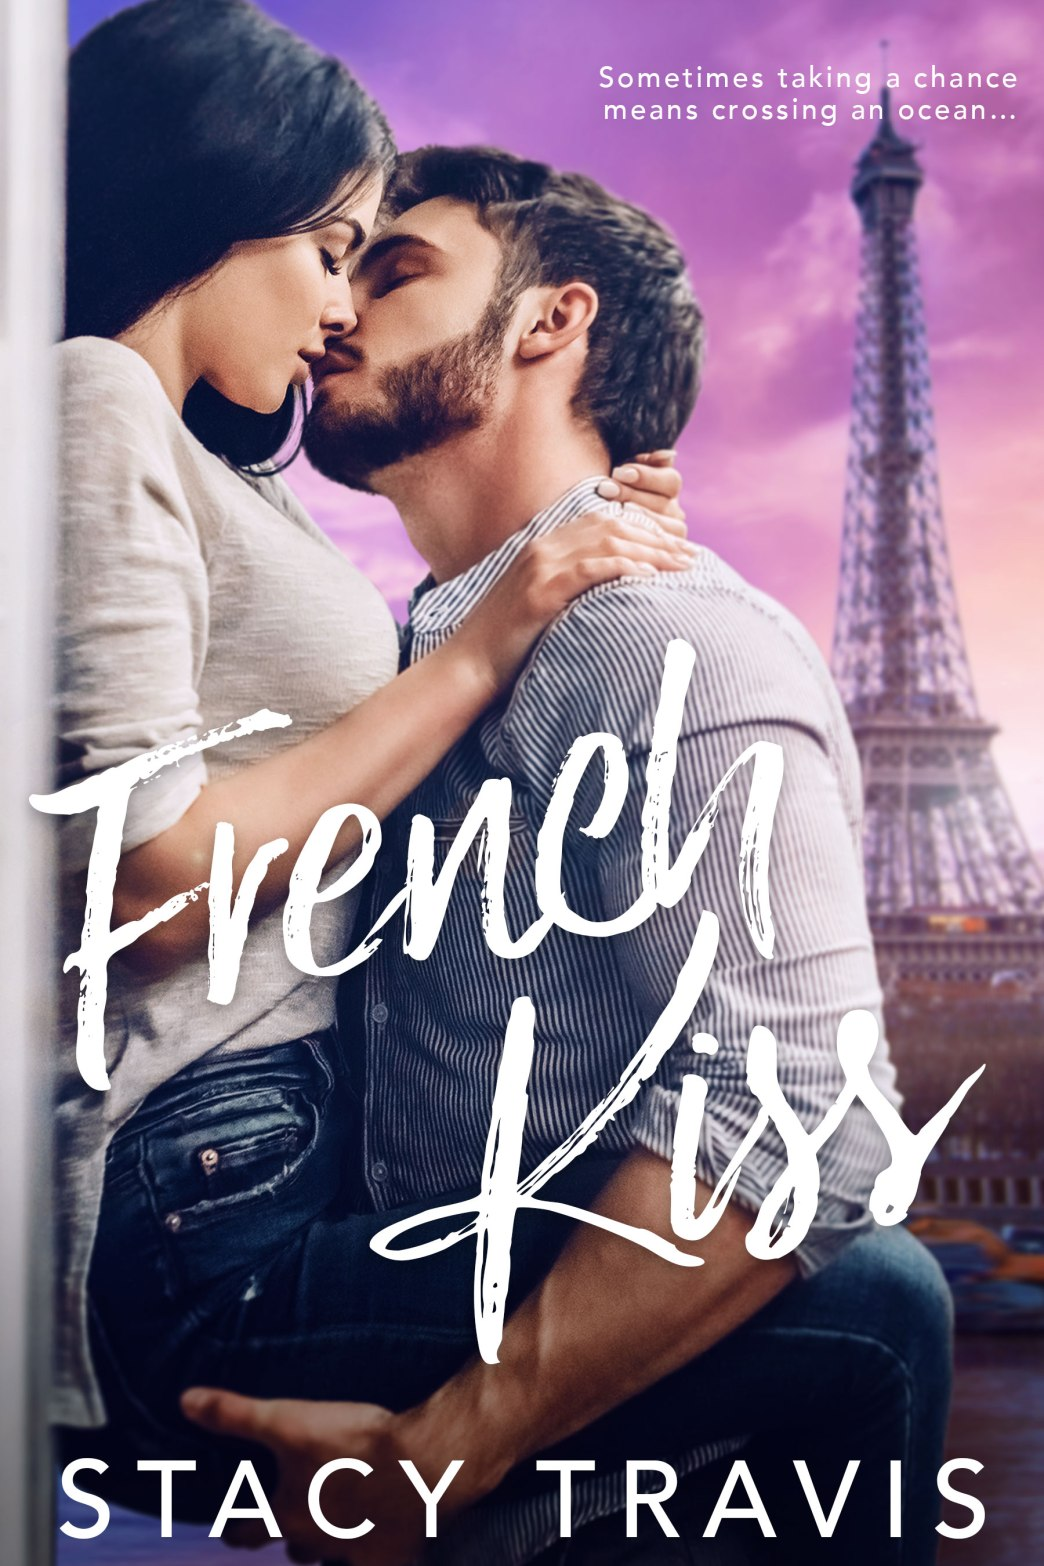 FrenchKiss-ebook6x9.jpg